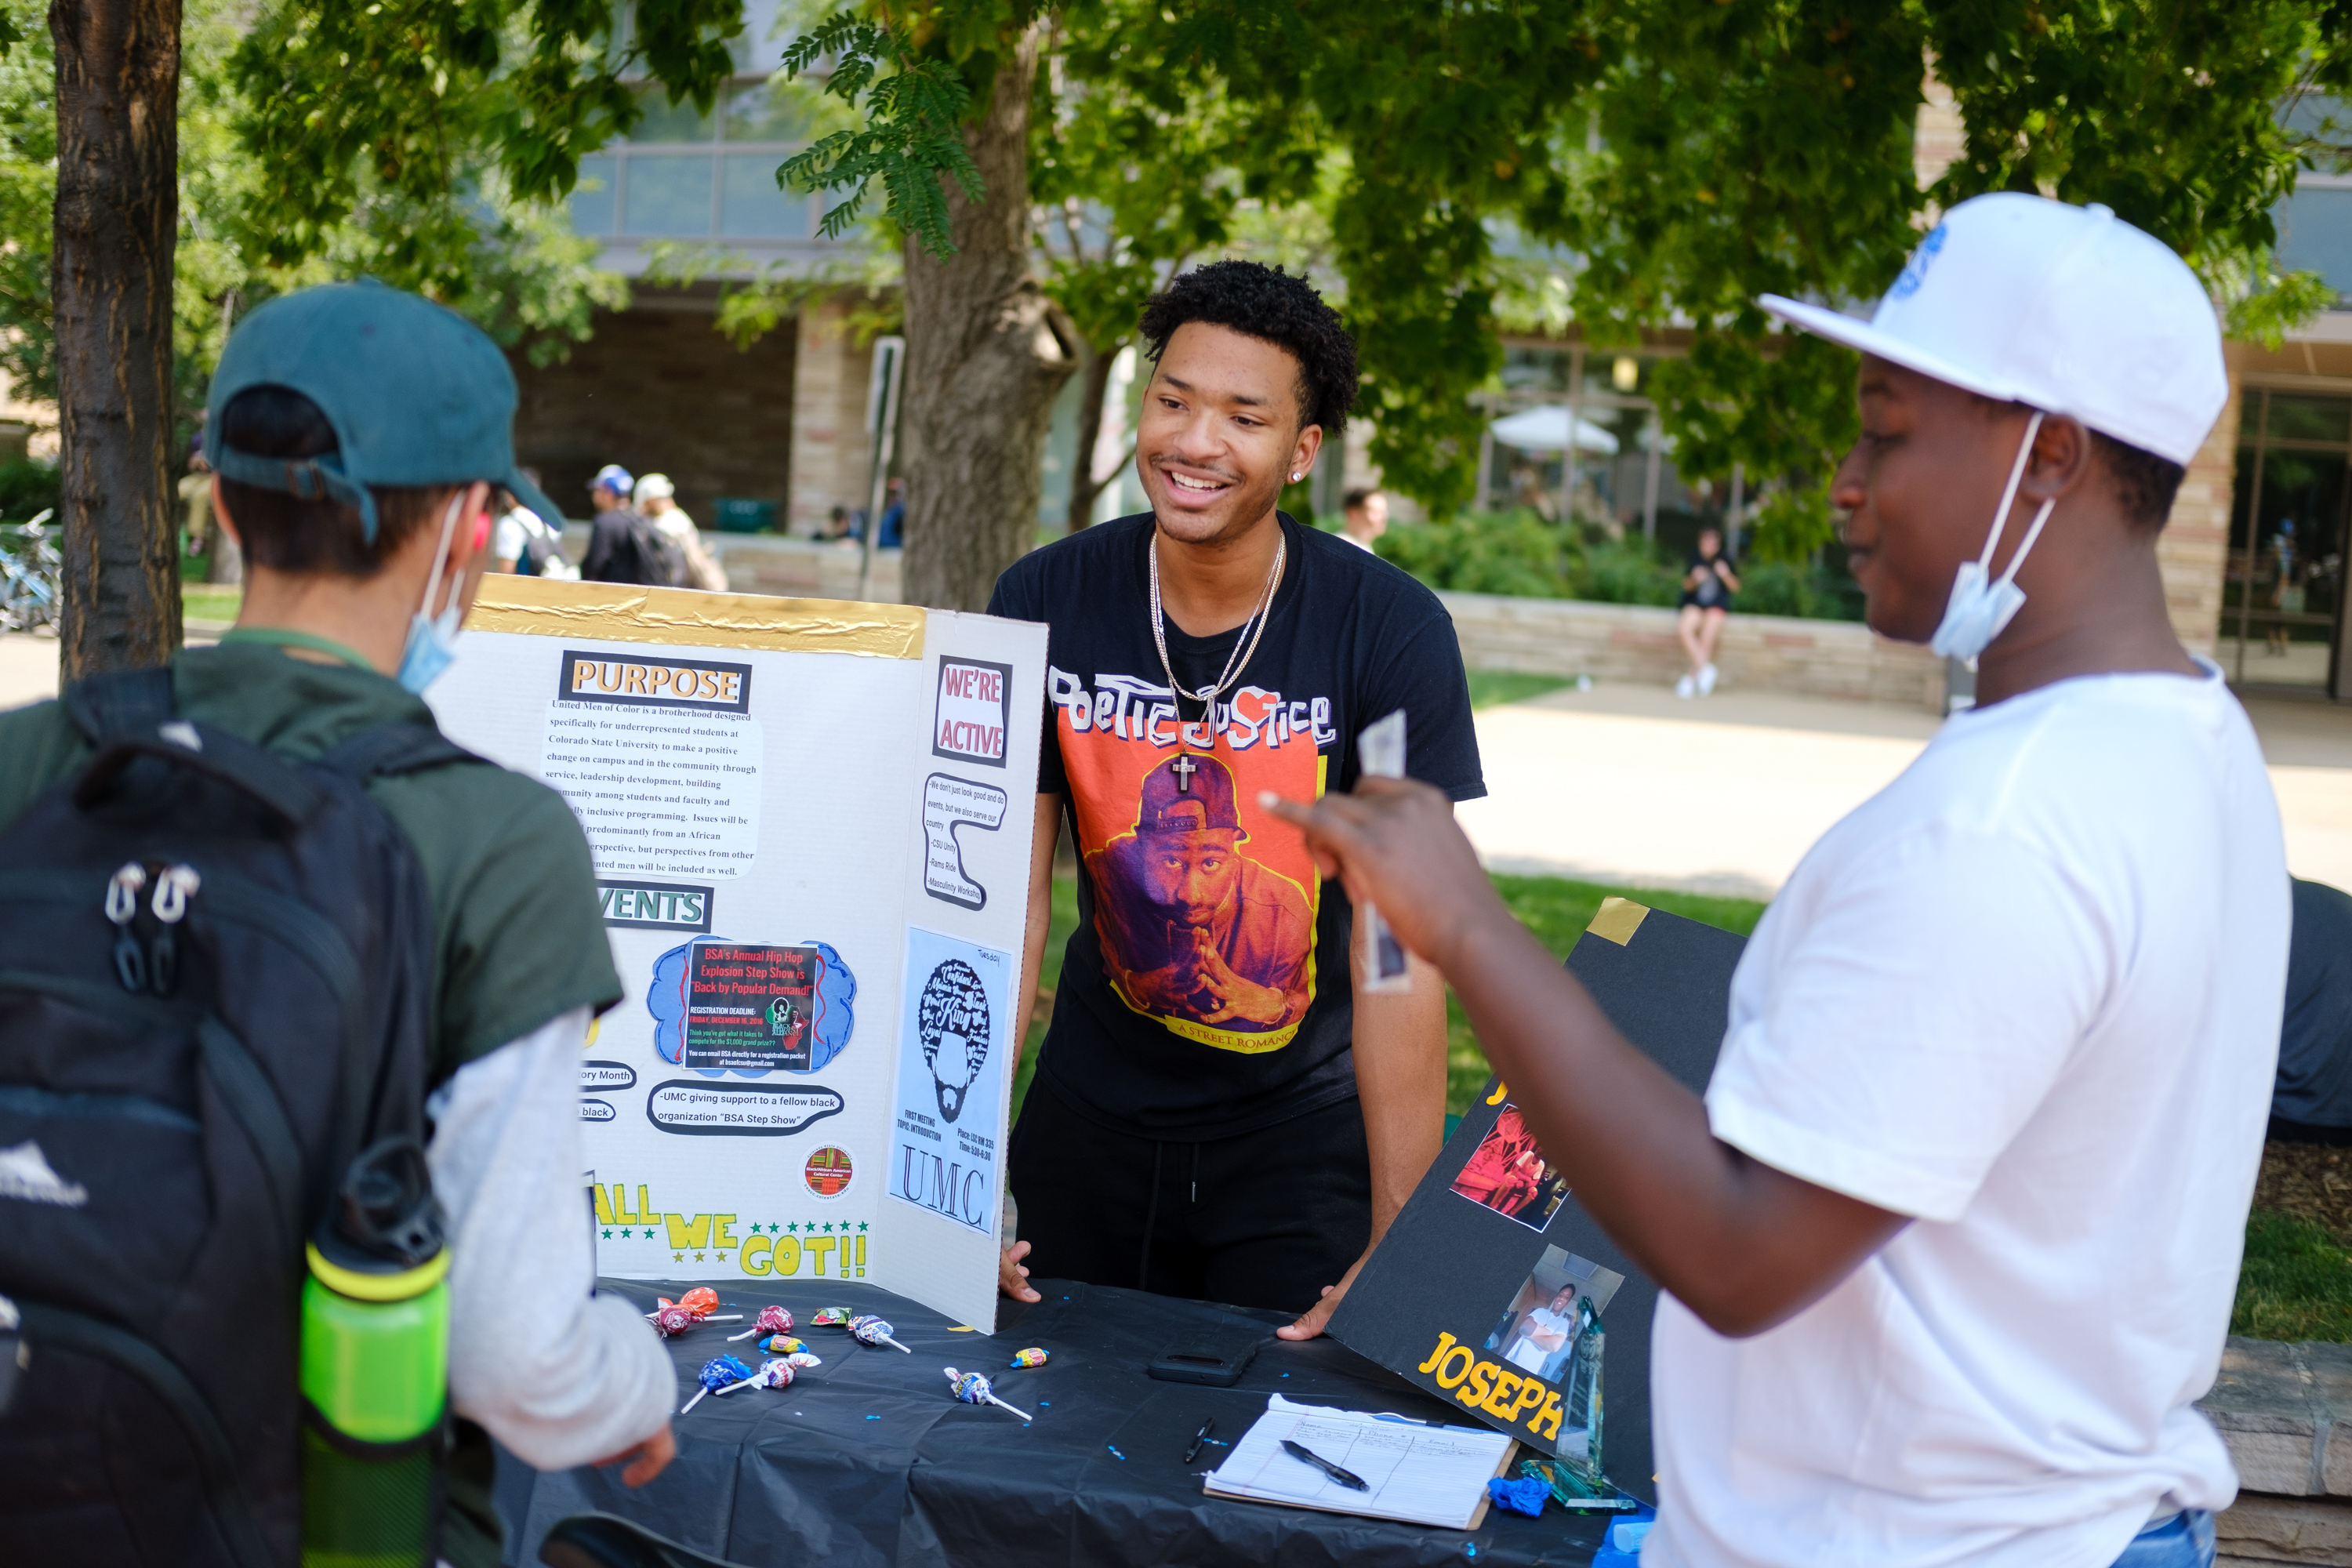 Two young men talk to a fellow student student about their on-campus group, United Men of Color, during a student involvement fair.